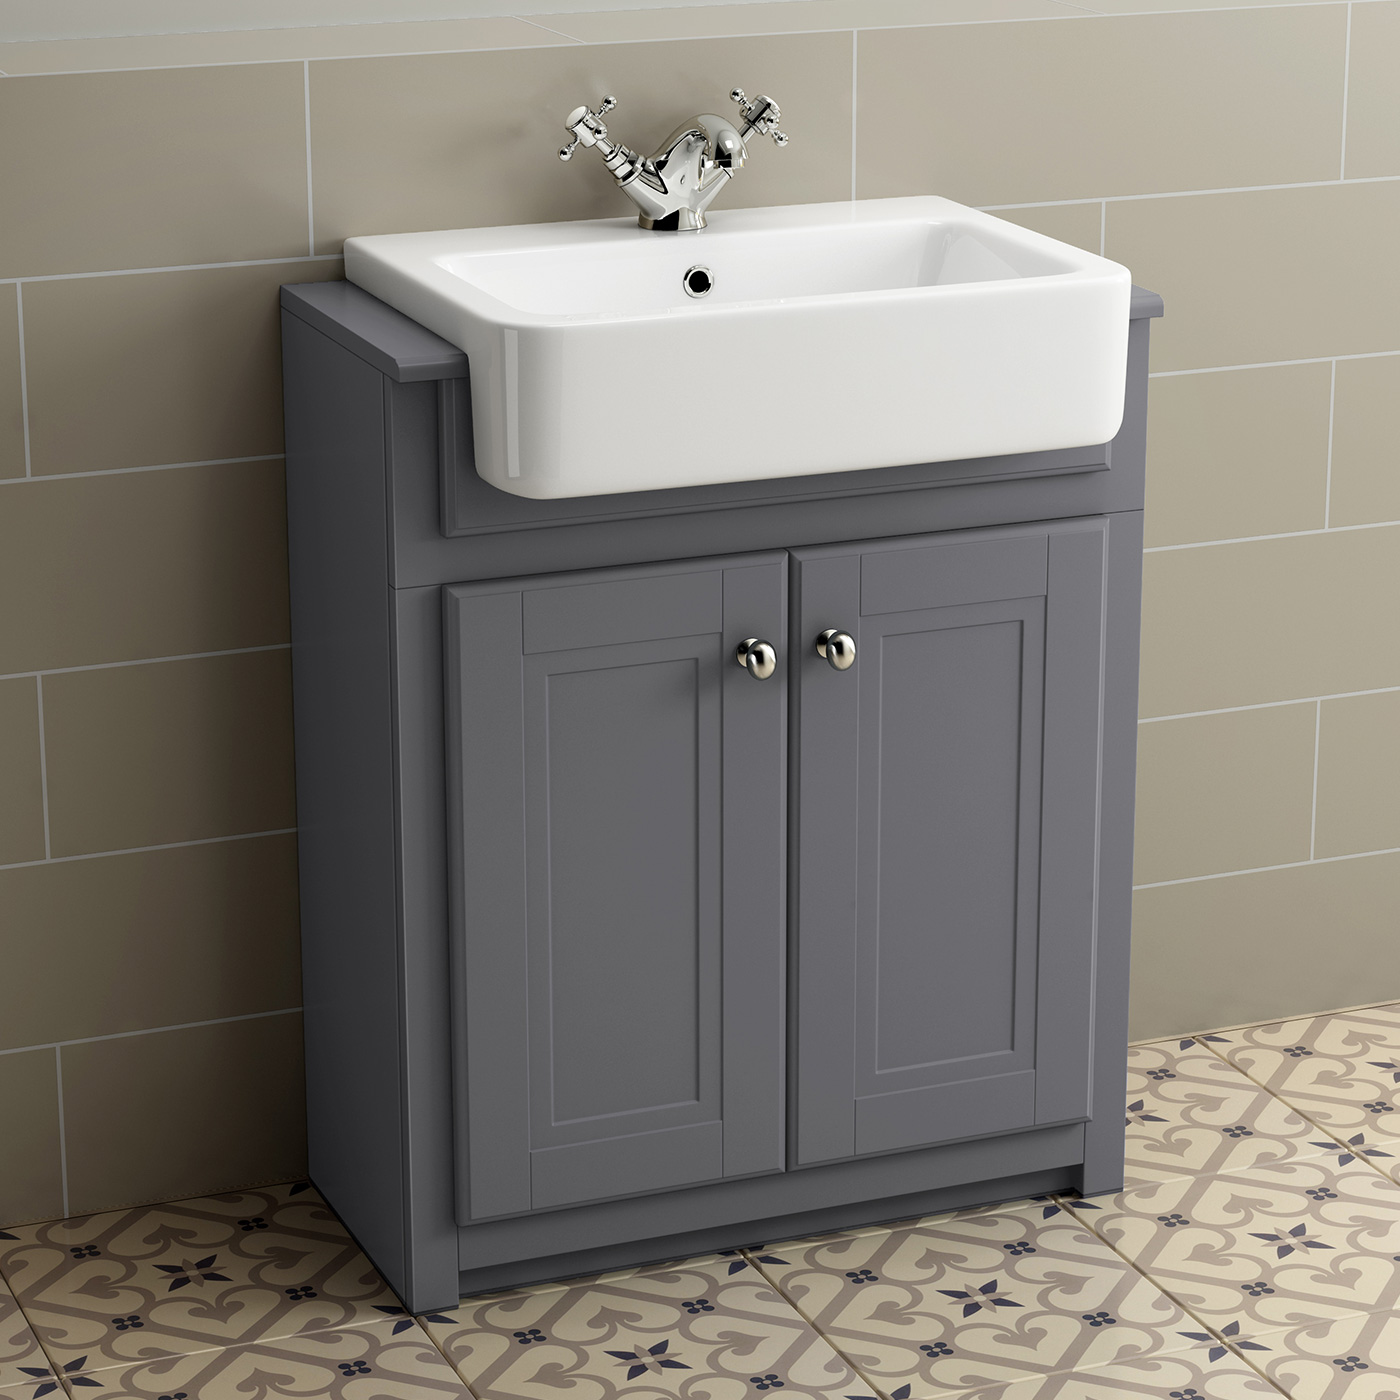 Peaceful Beneficial sink vanity units for bathrooms Lovely Staggering